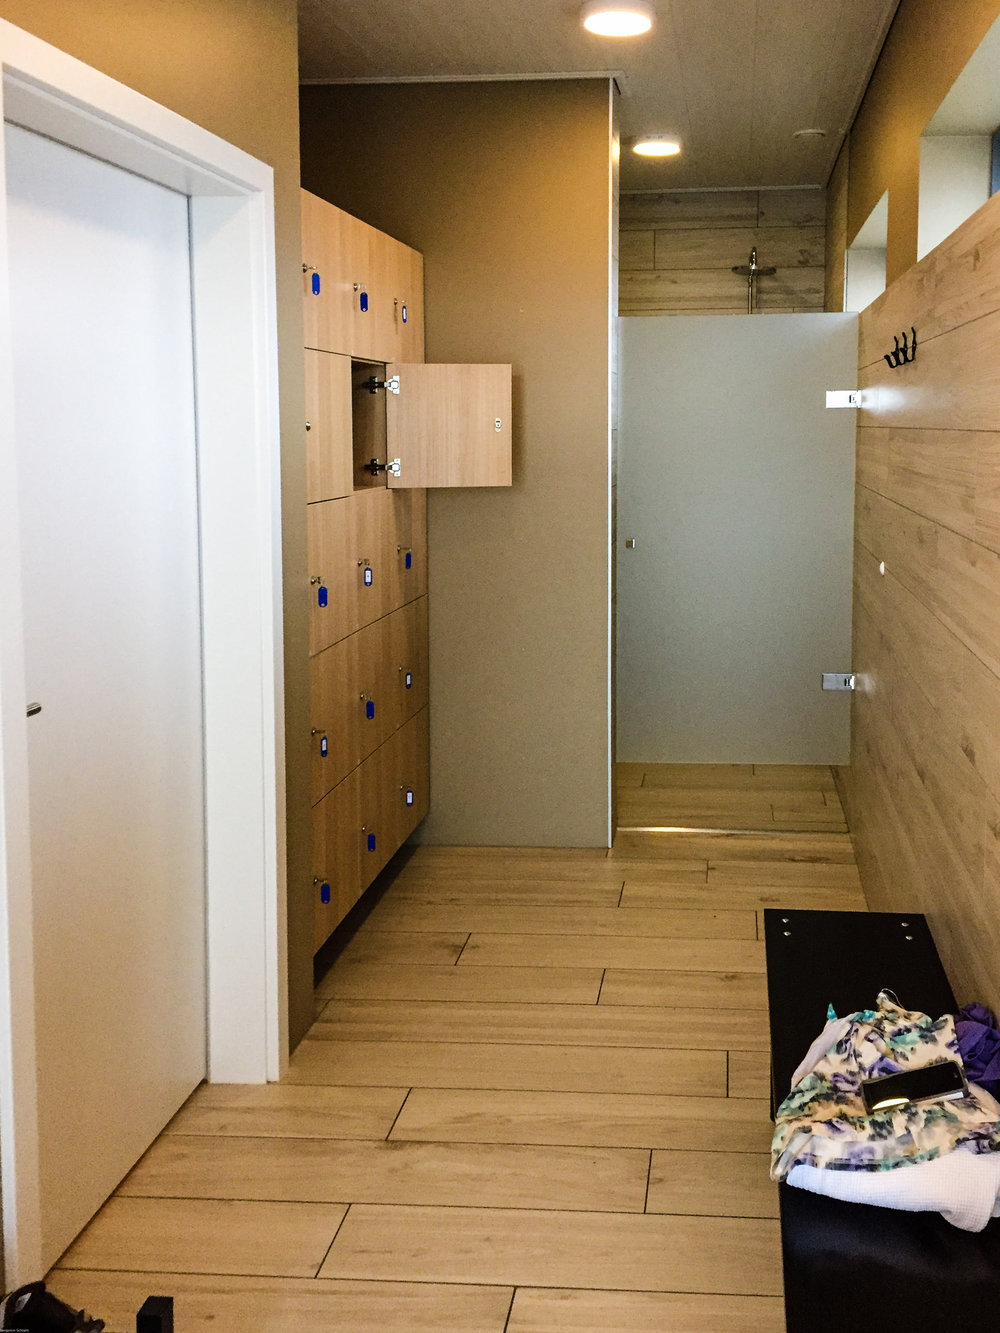 The dressing room with bathroom, cubbies, and shower